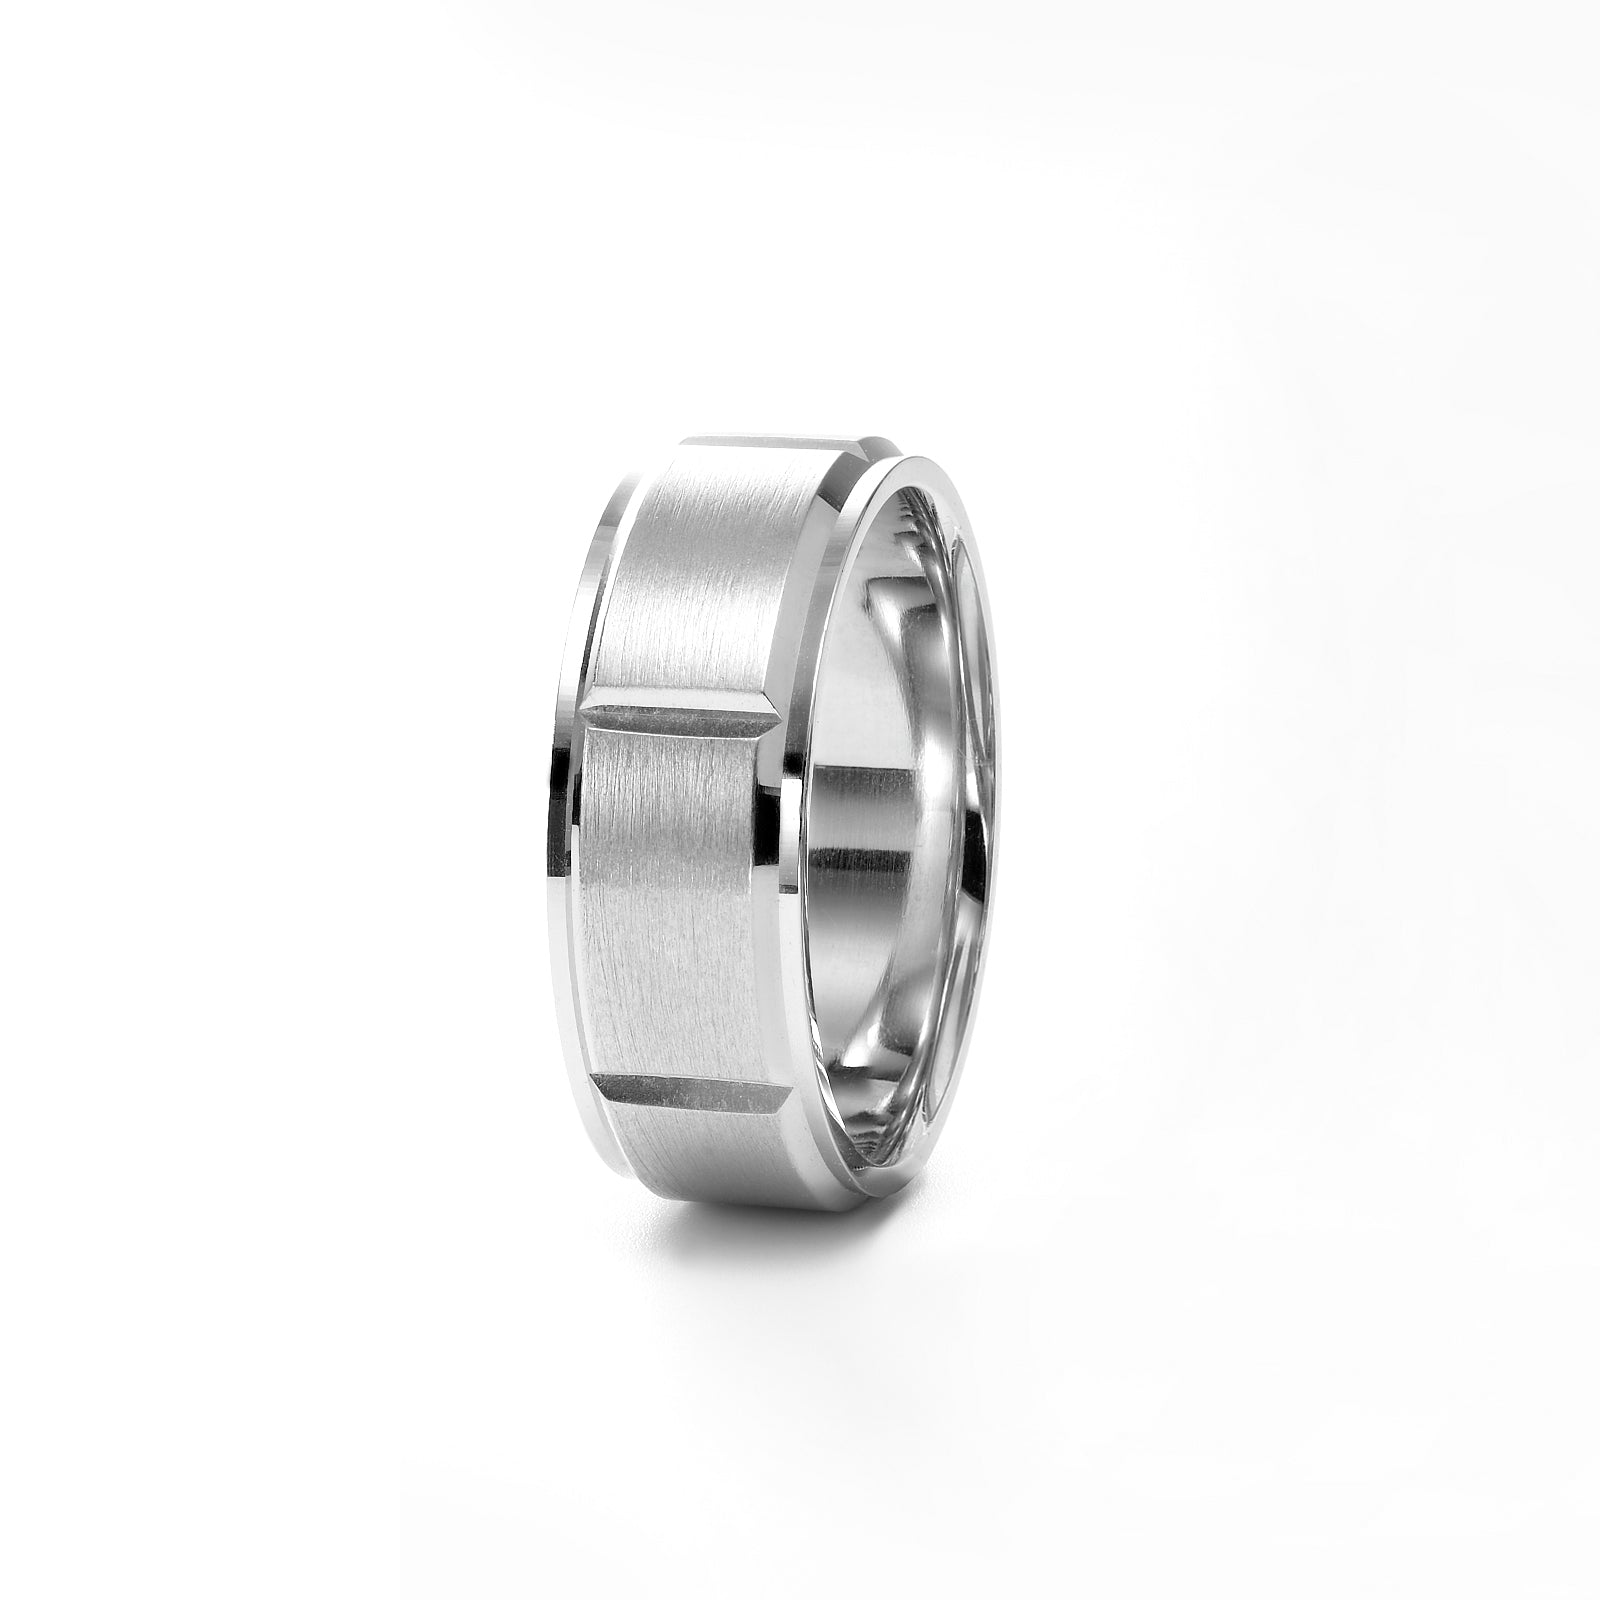 Men's Brushed Beveled Wedding Band, 8 MM, 14K White Gold